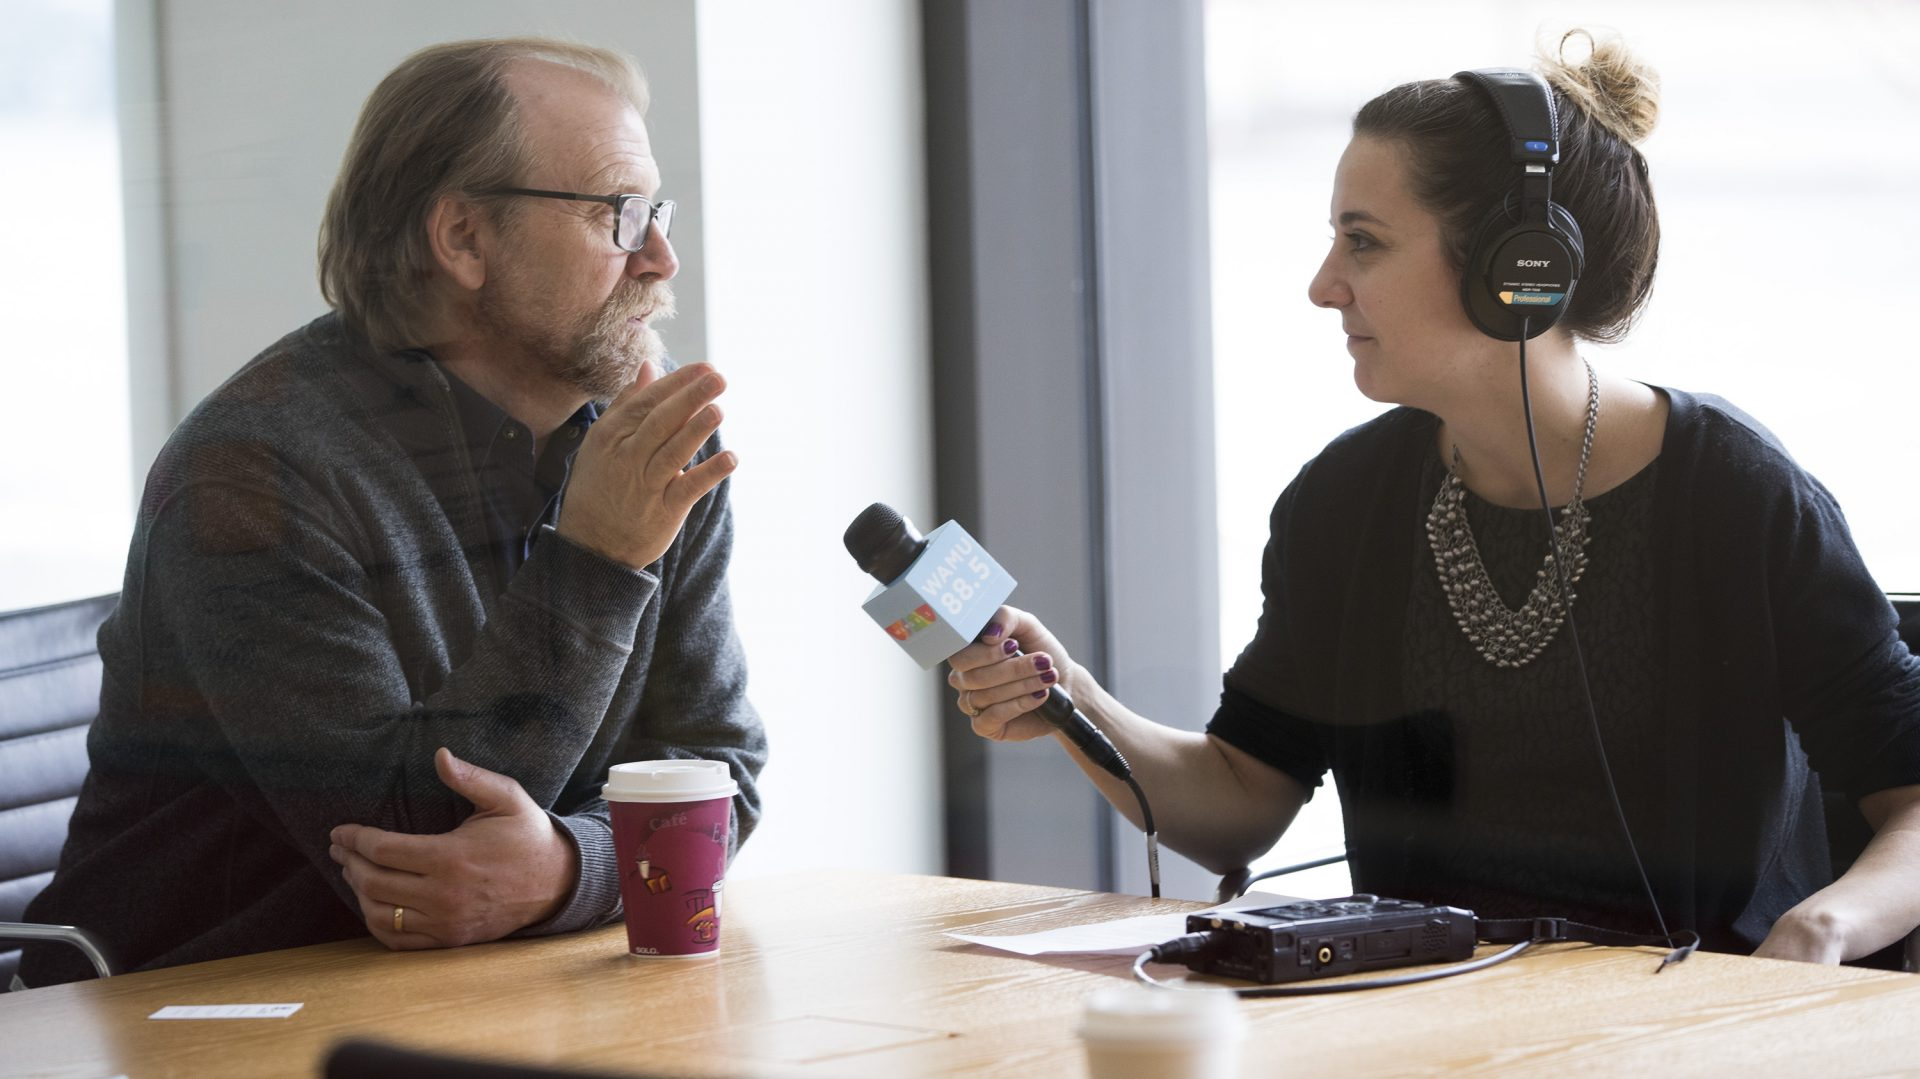 Mikaela Lefrak with headphones on holding a WAMU microphone interviewing a man seated at a table